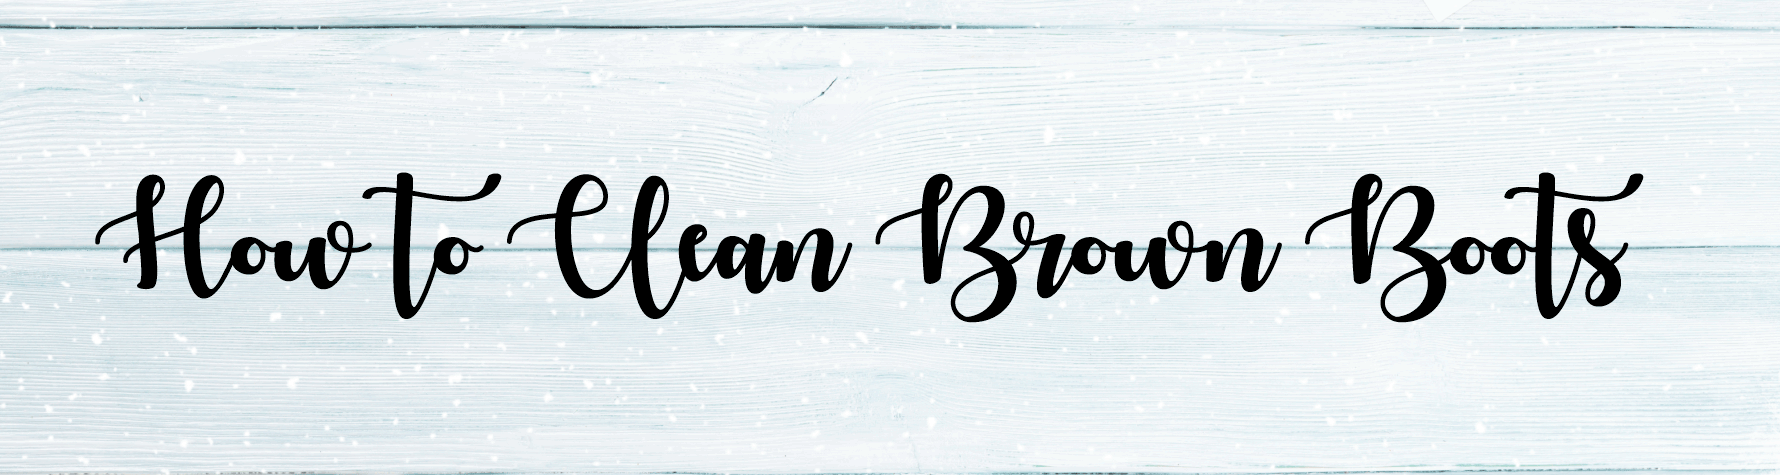 How-to-Clean-Brown-Boots